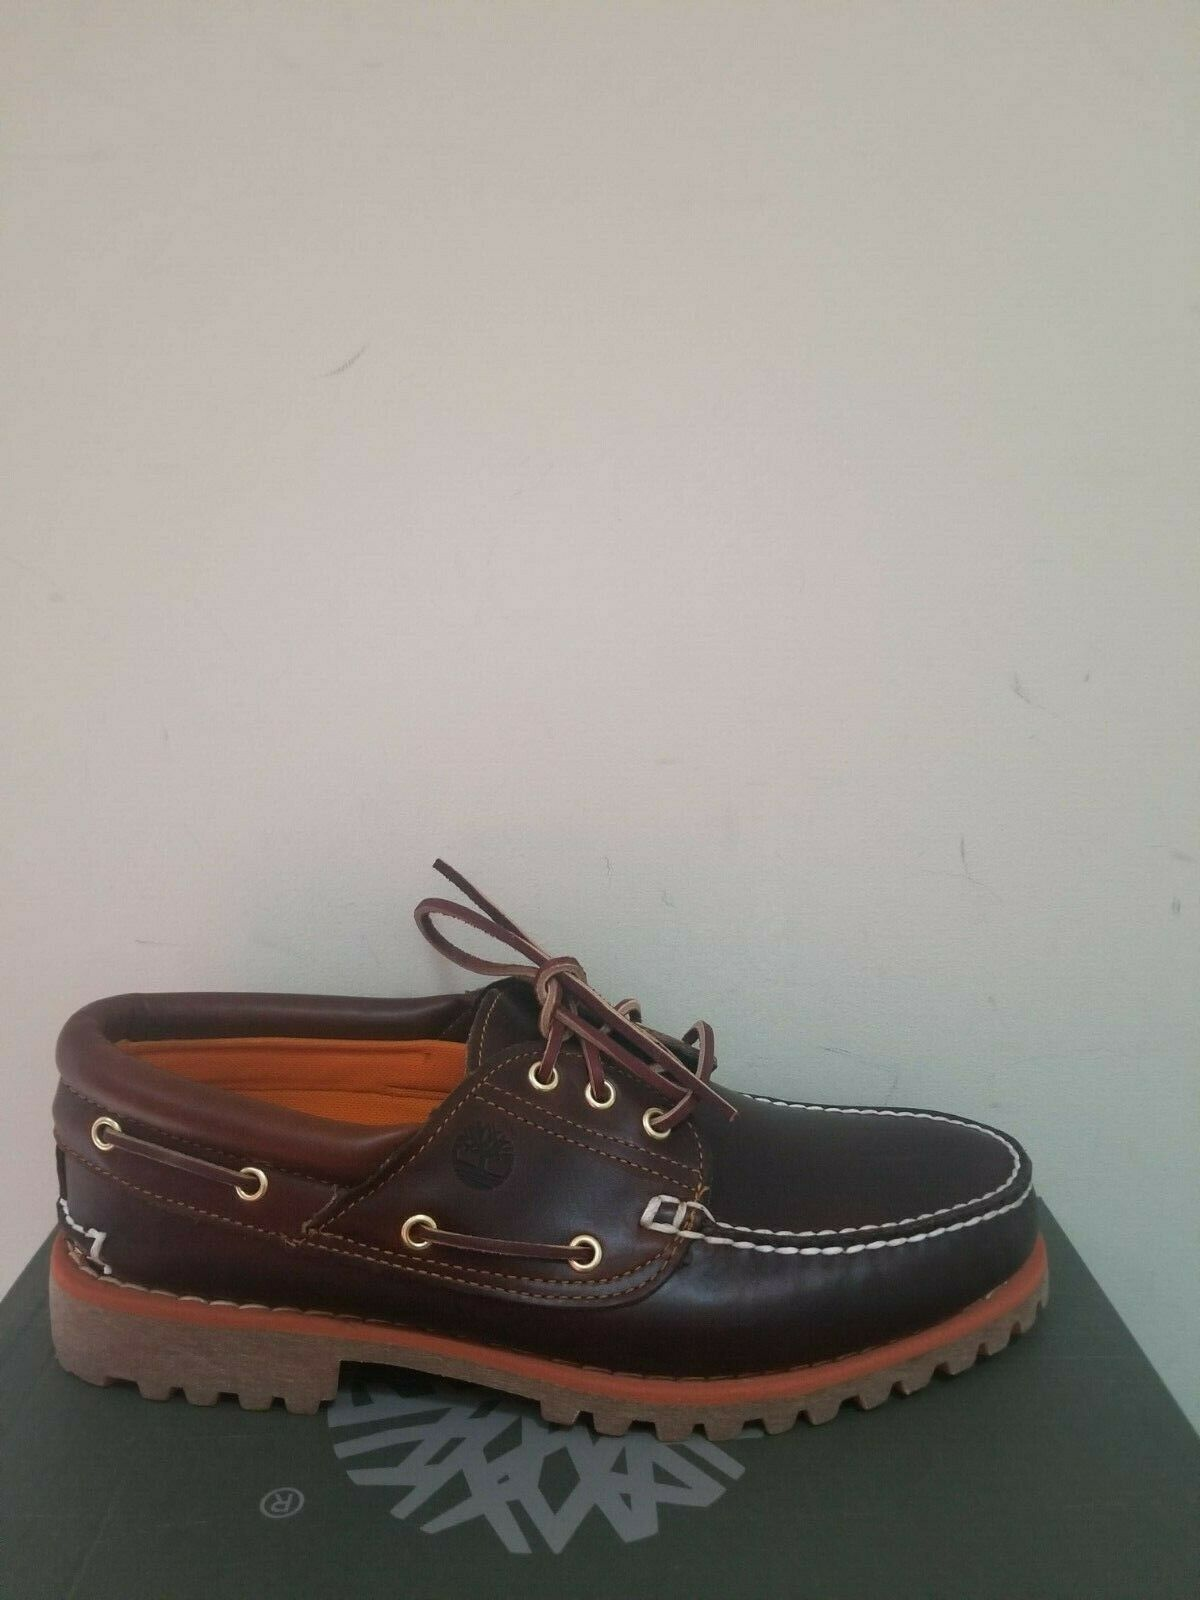 Celo Platillo Muestra  Timberland Classic Boat Shoes 2-Eye Boat Shoes Deck Shoes Men Shoes for  sale online   eBay